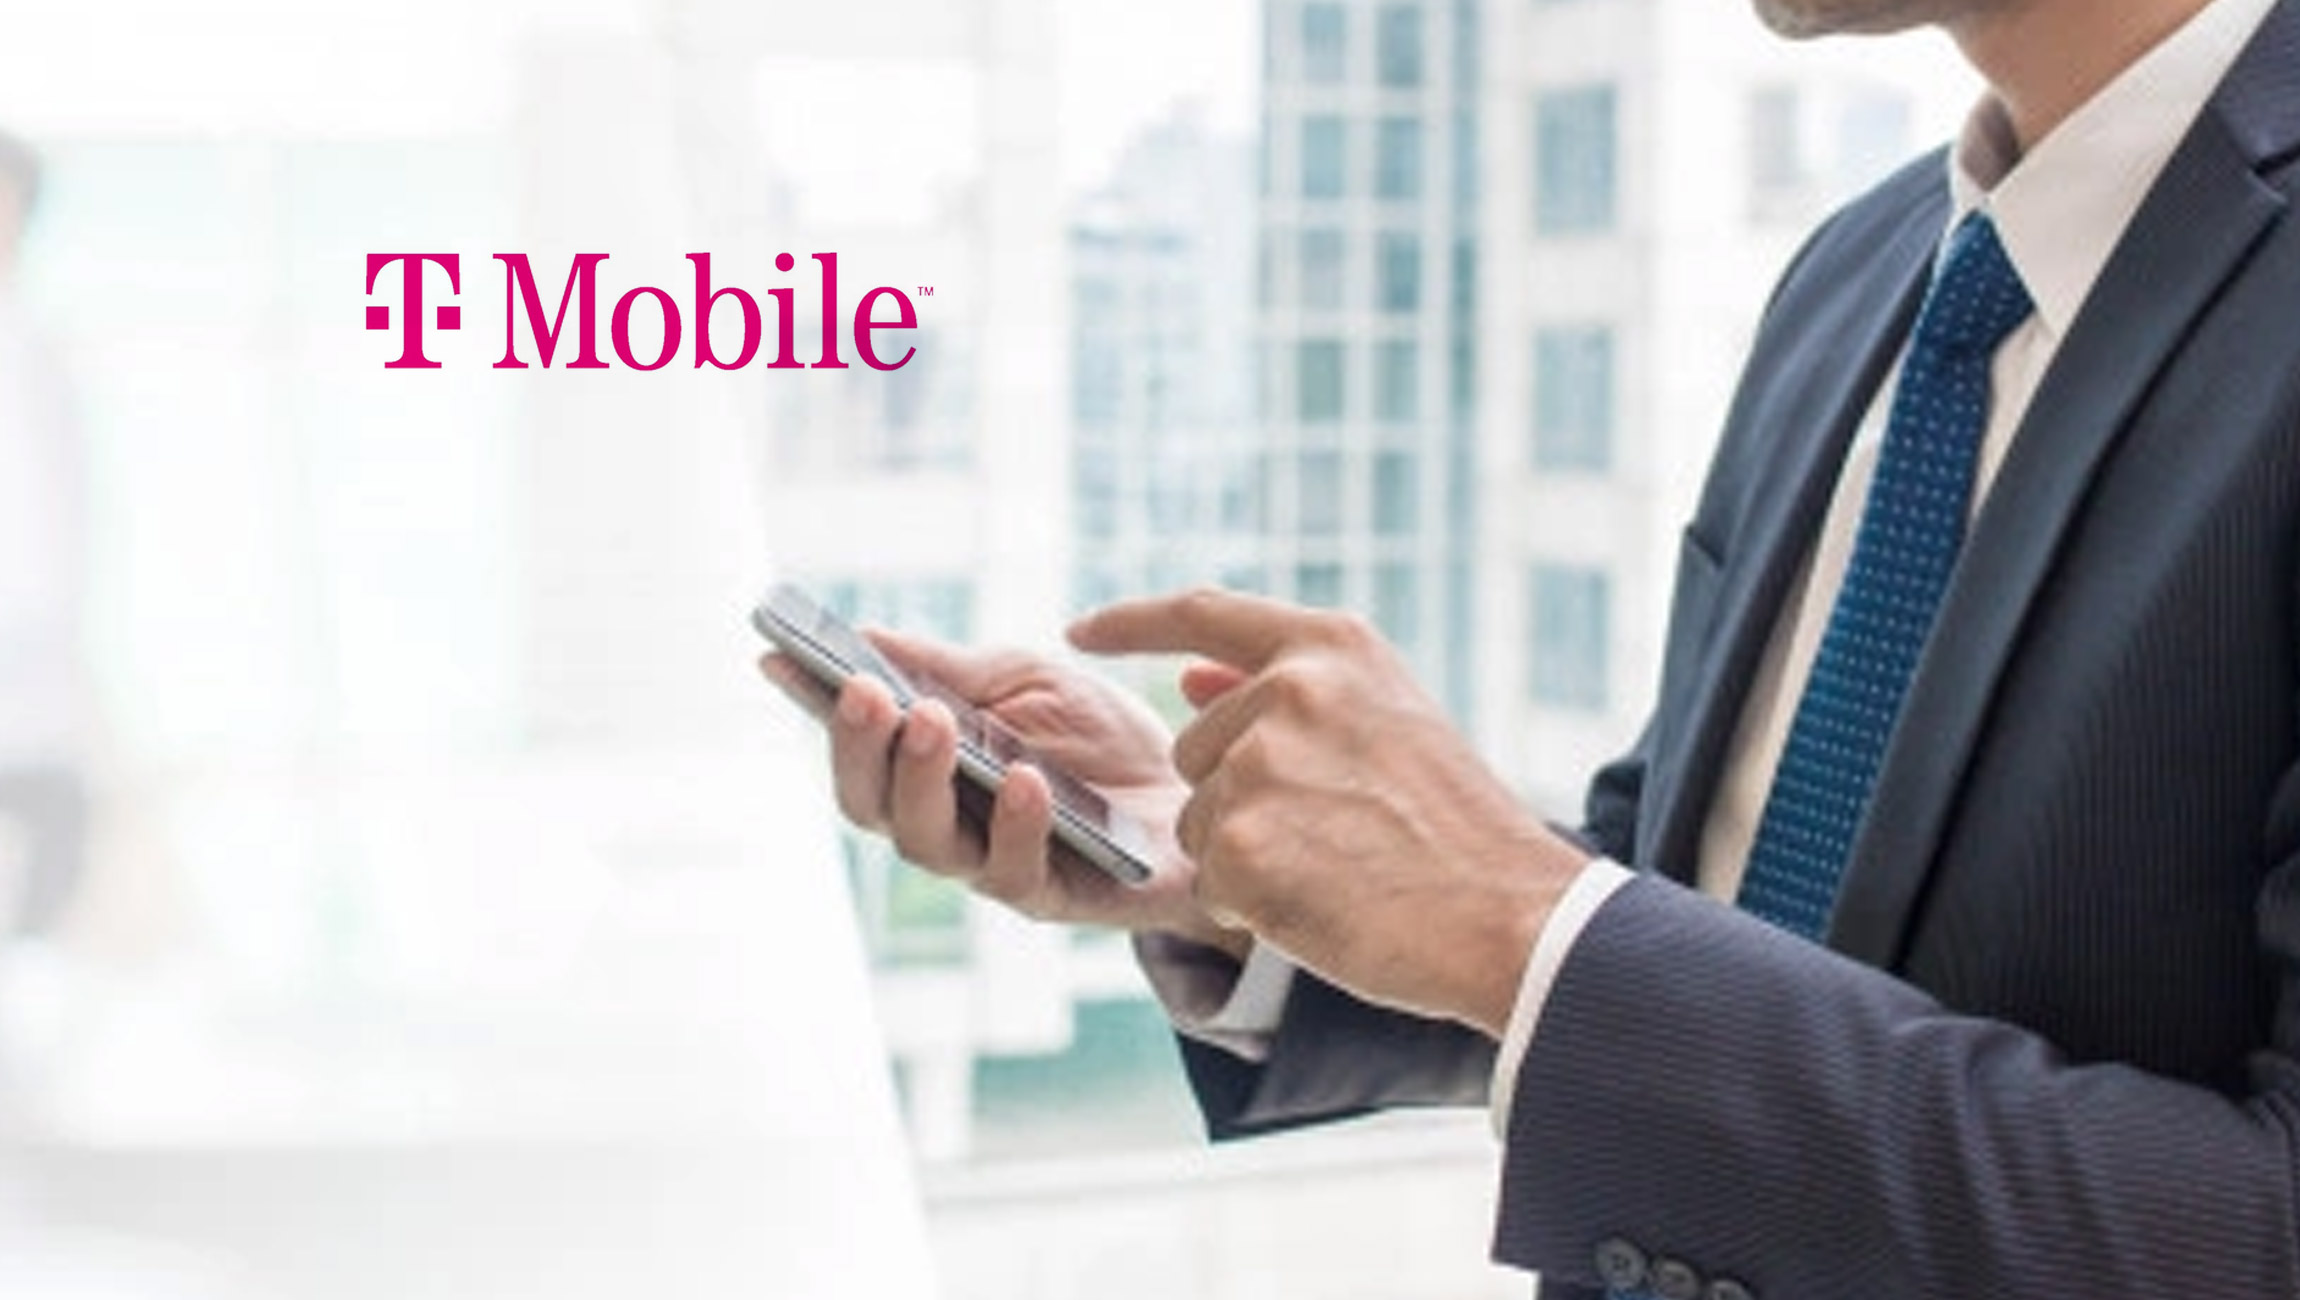 T-Mobile Has Most Reliable 5G Network (Again) According to New Report